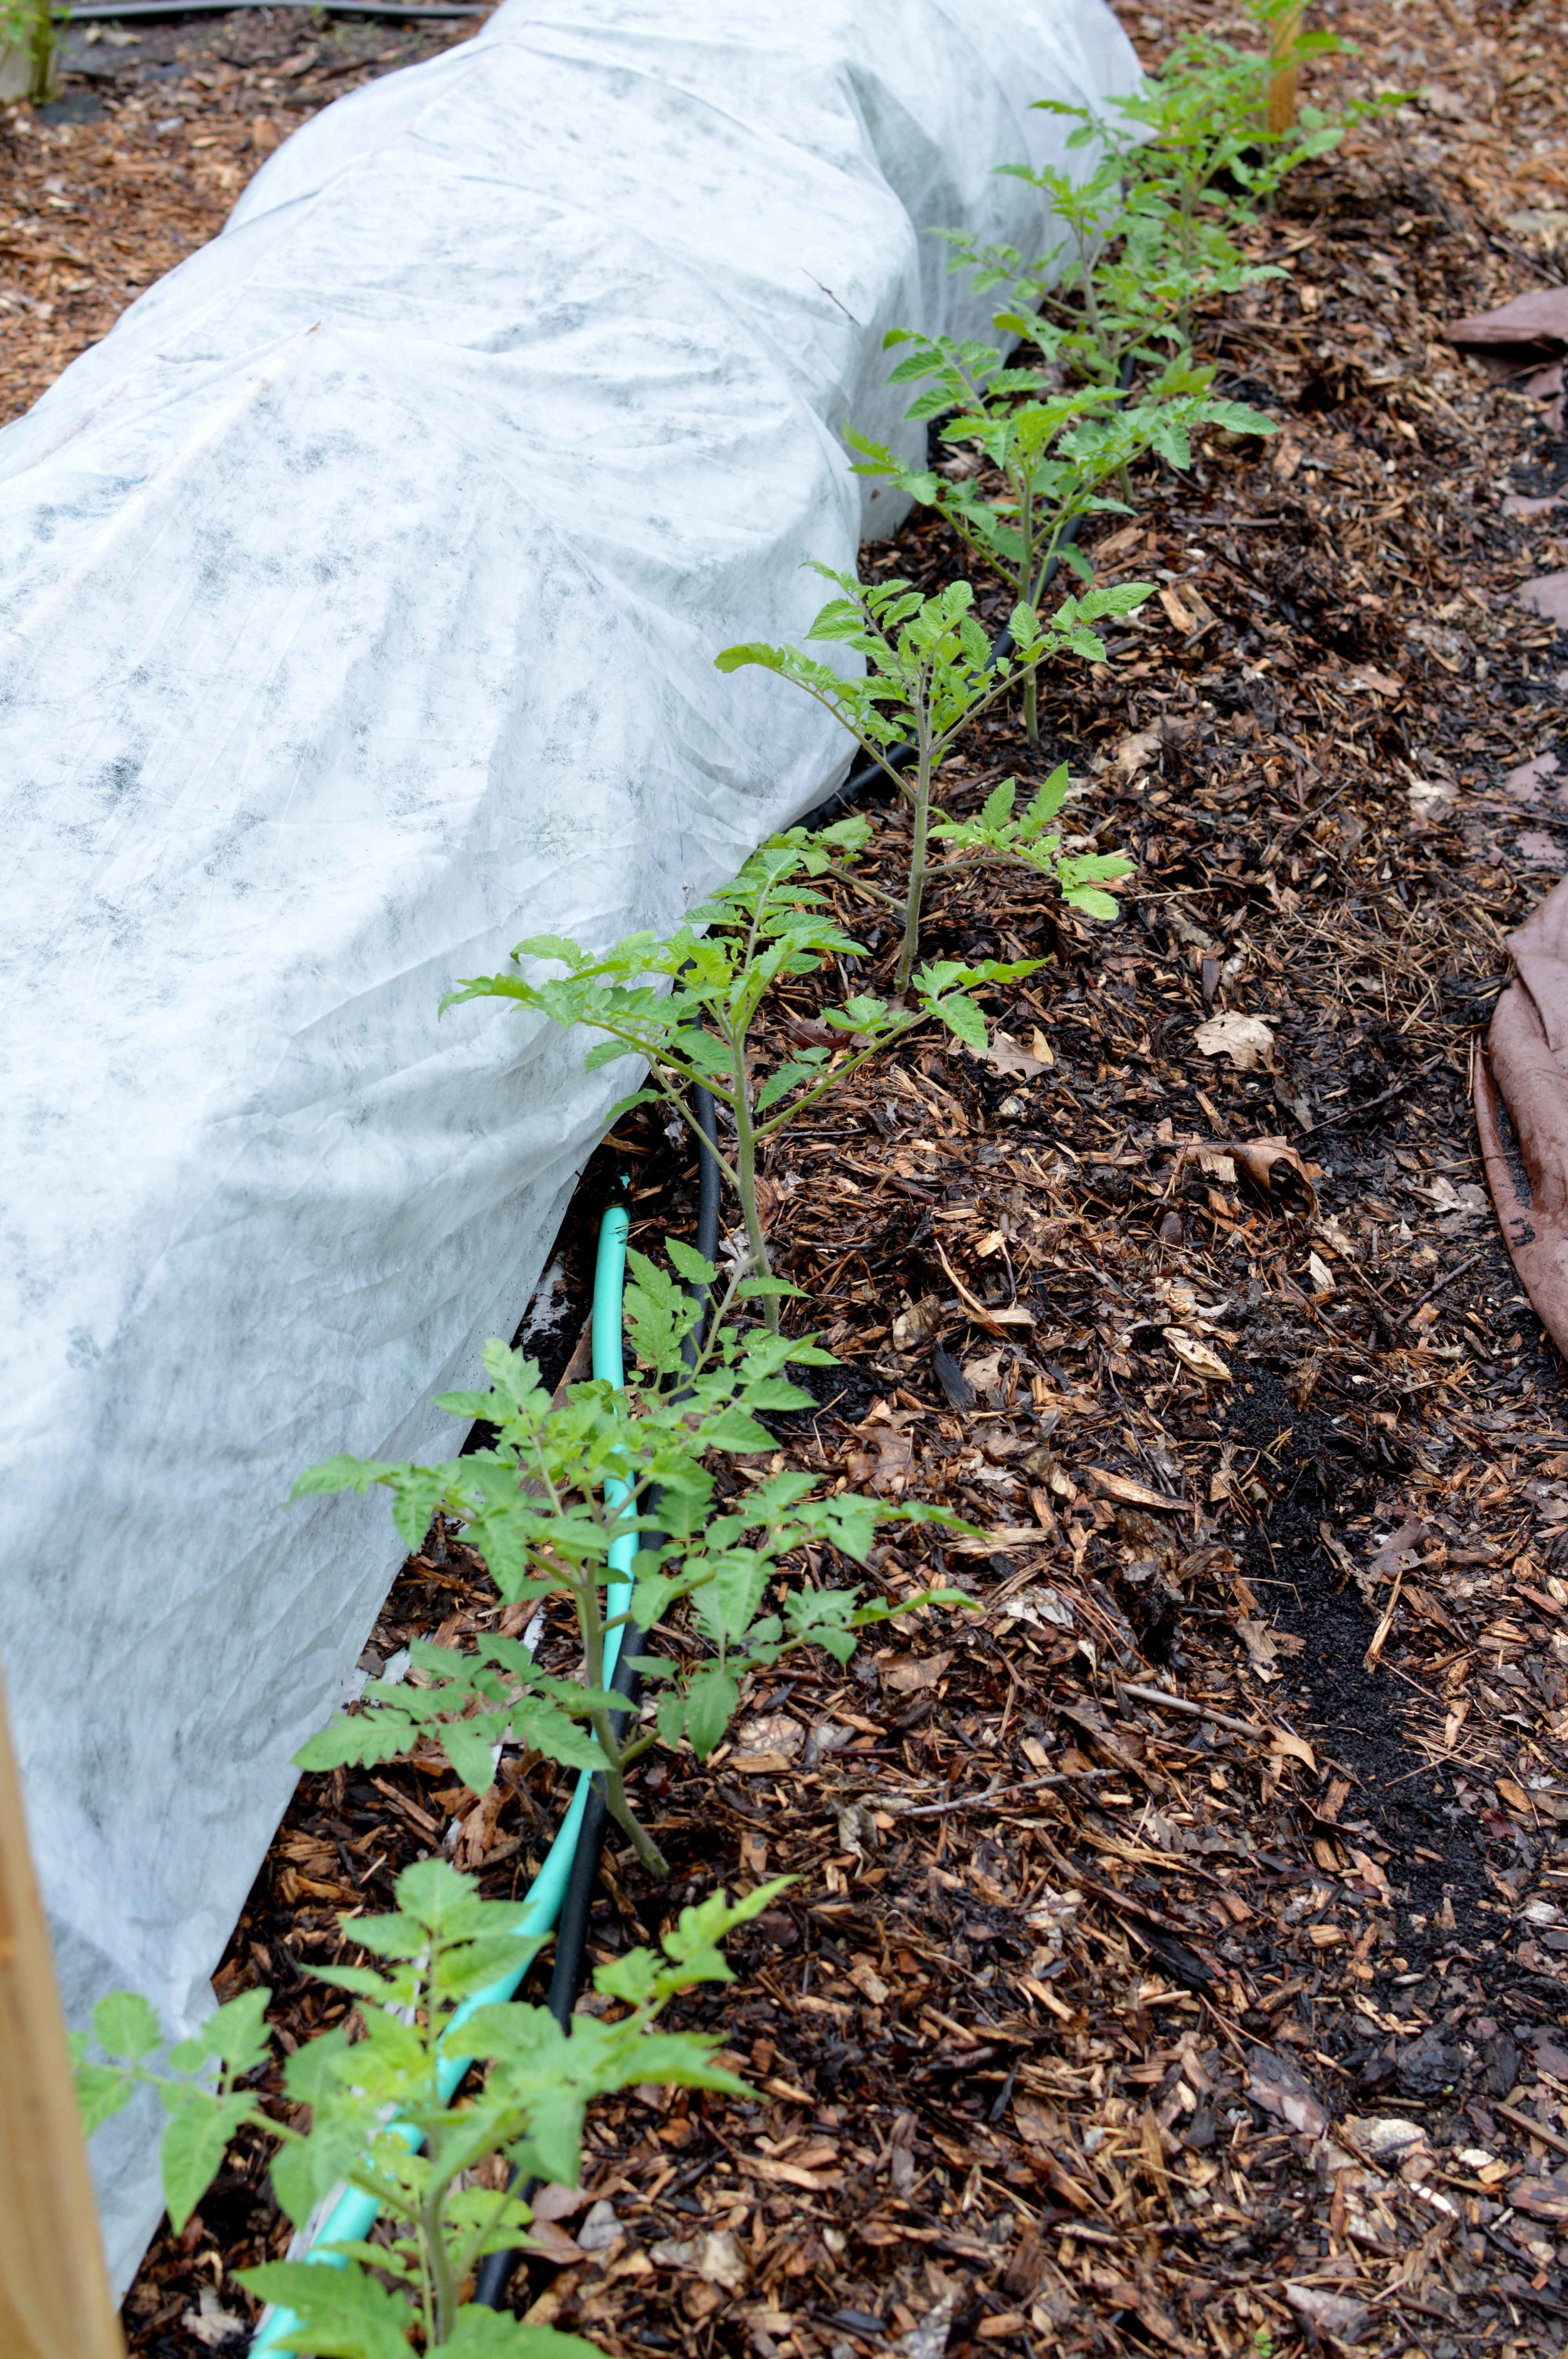 Row cover over kale. (Tomatoes were planted next to the kale to make the most of space.)